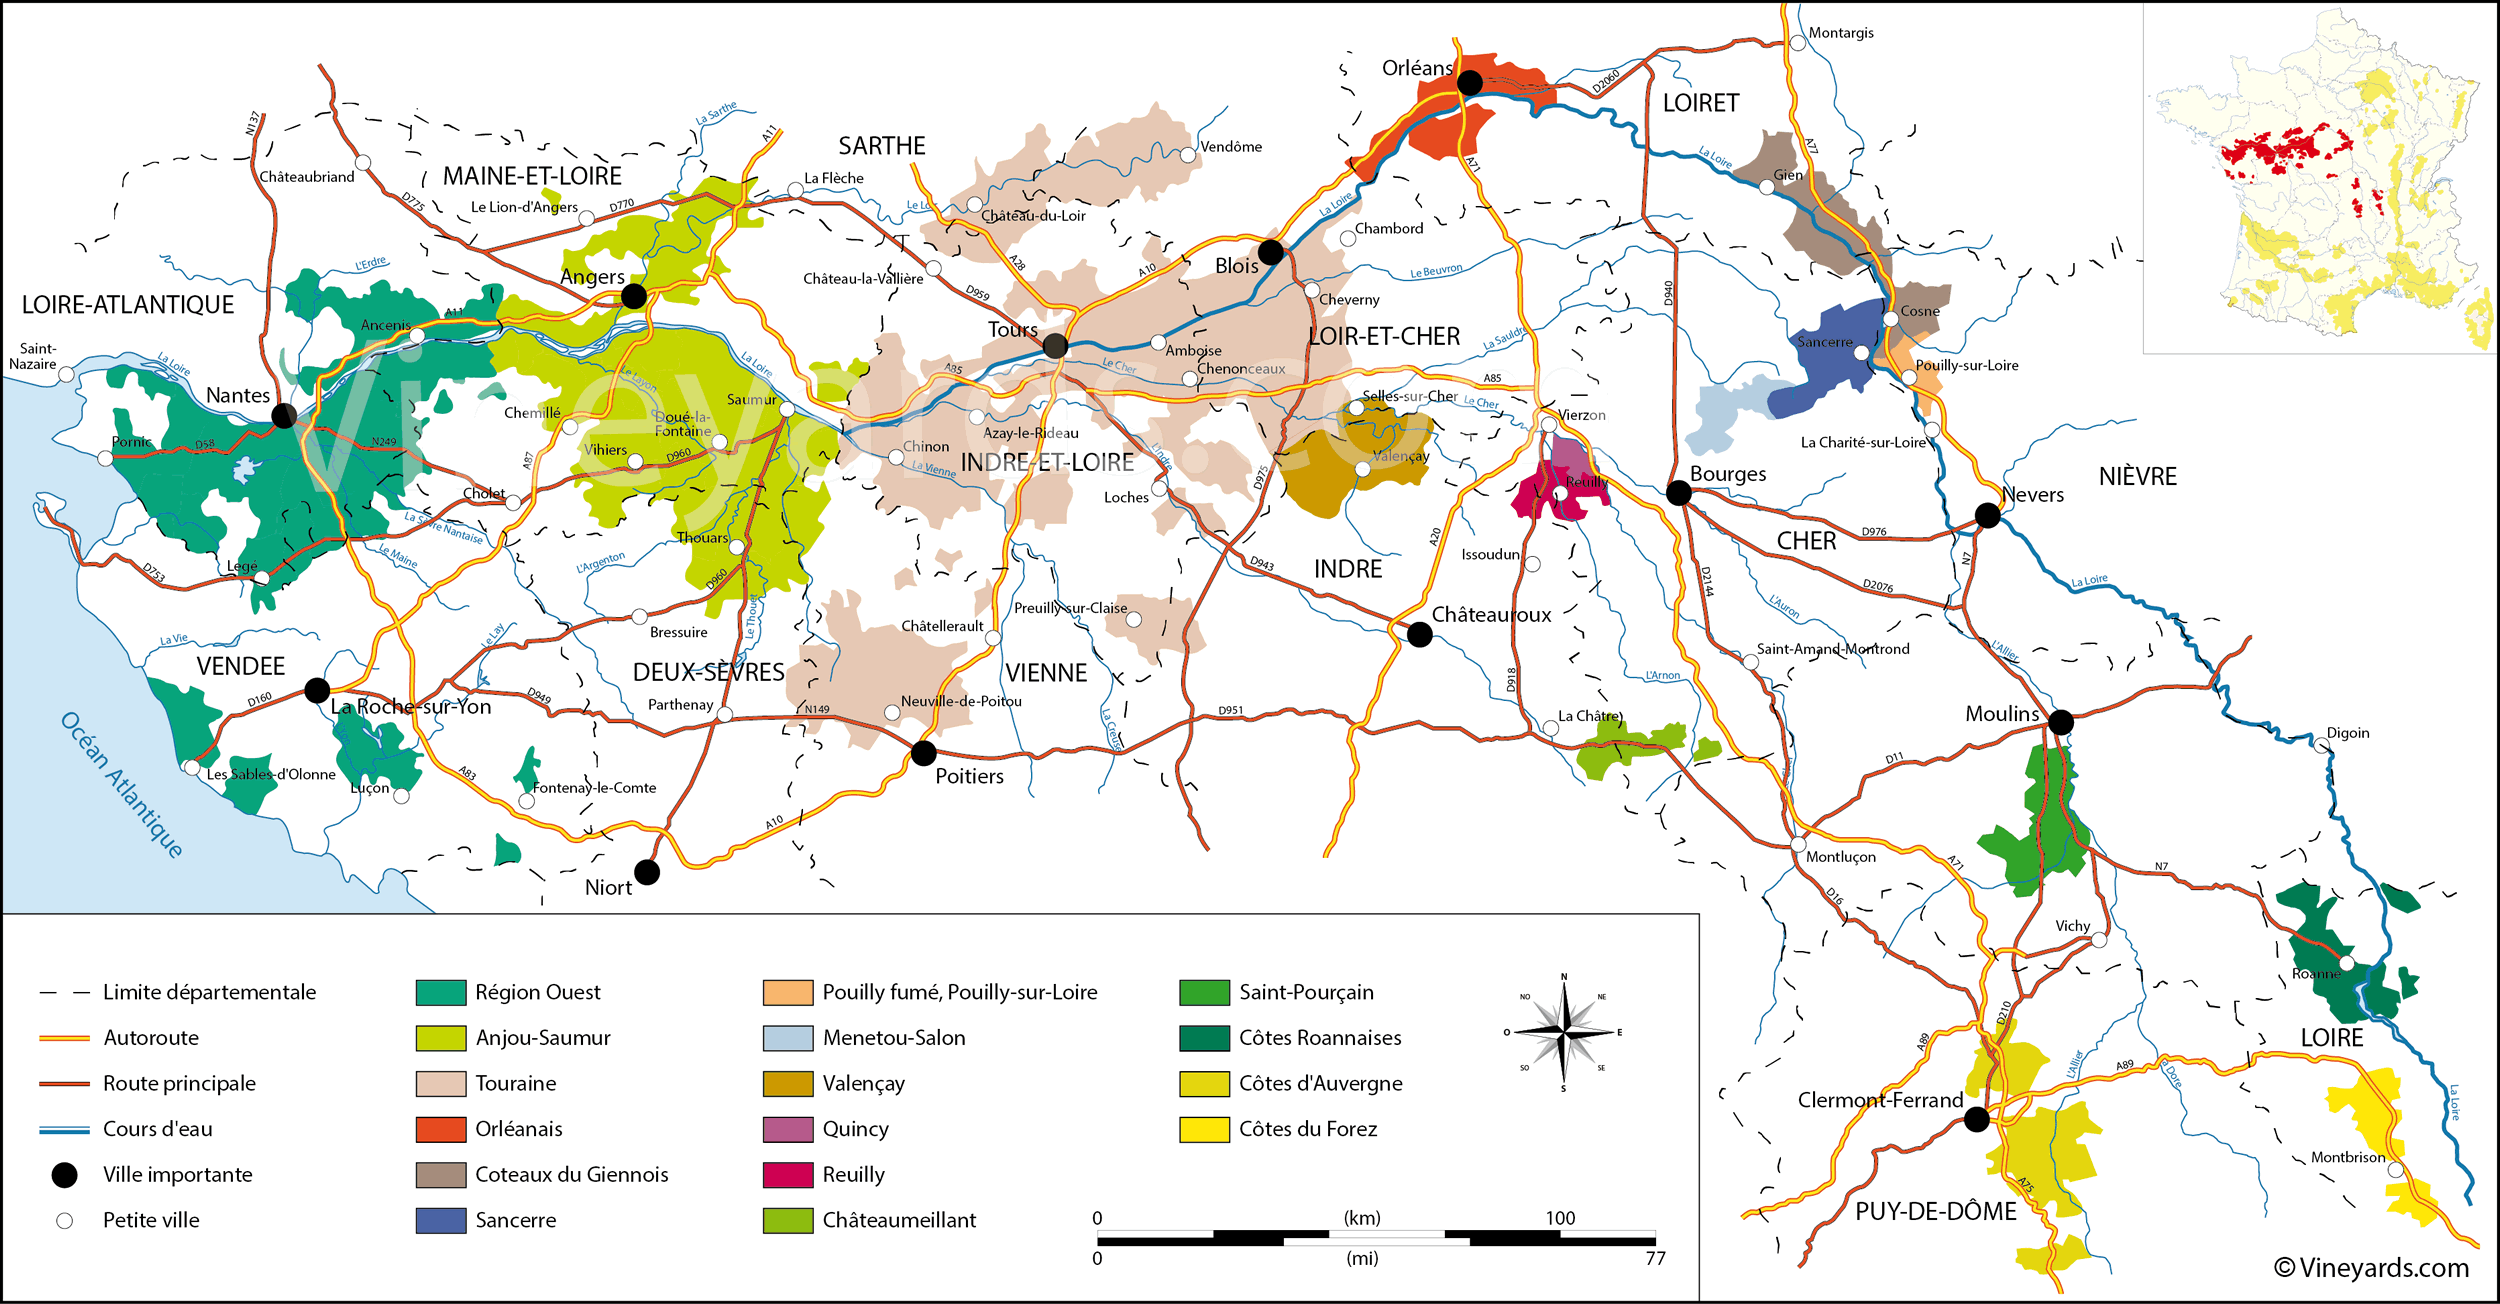 loire valley vineyard map. loire valley map of vineyards wine regions